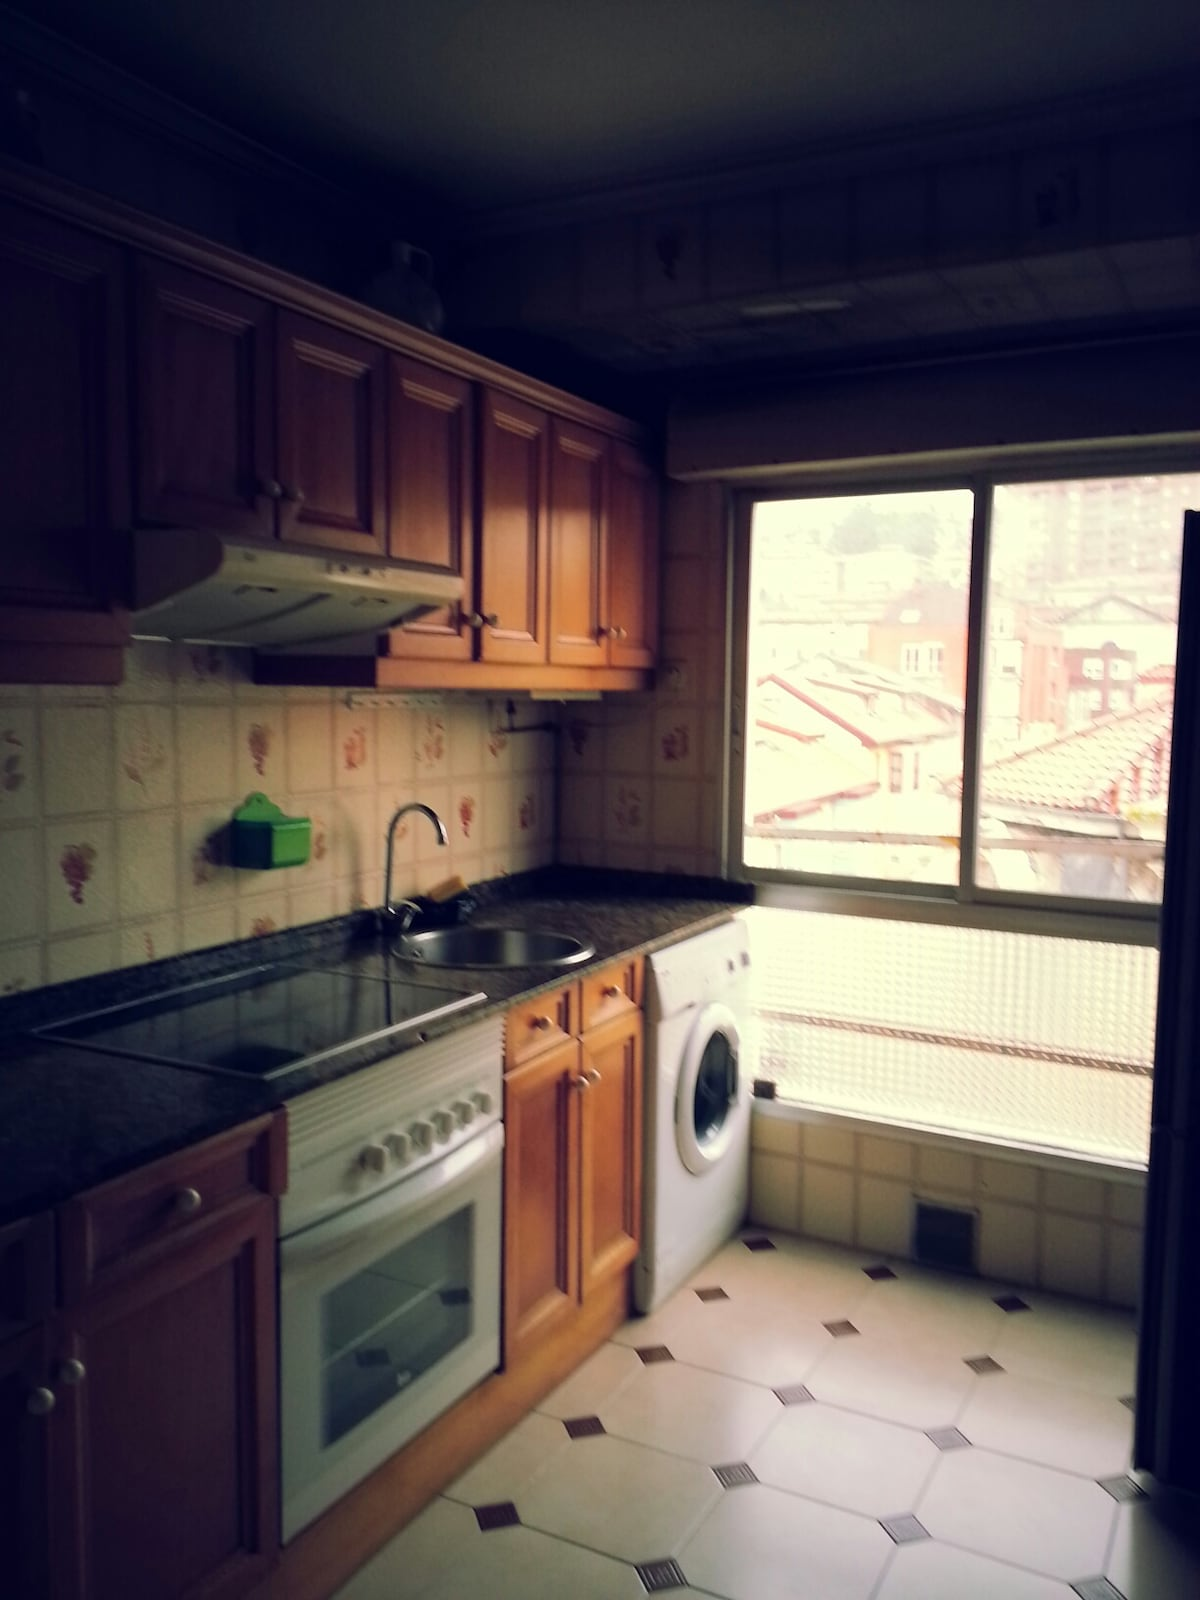 Street view from the window of your kitchen :-)